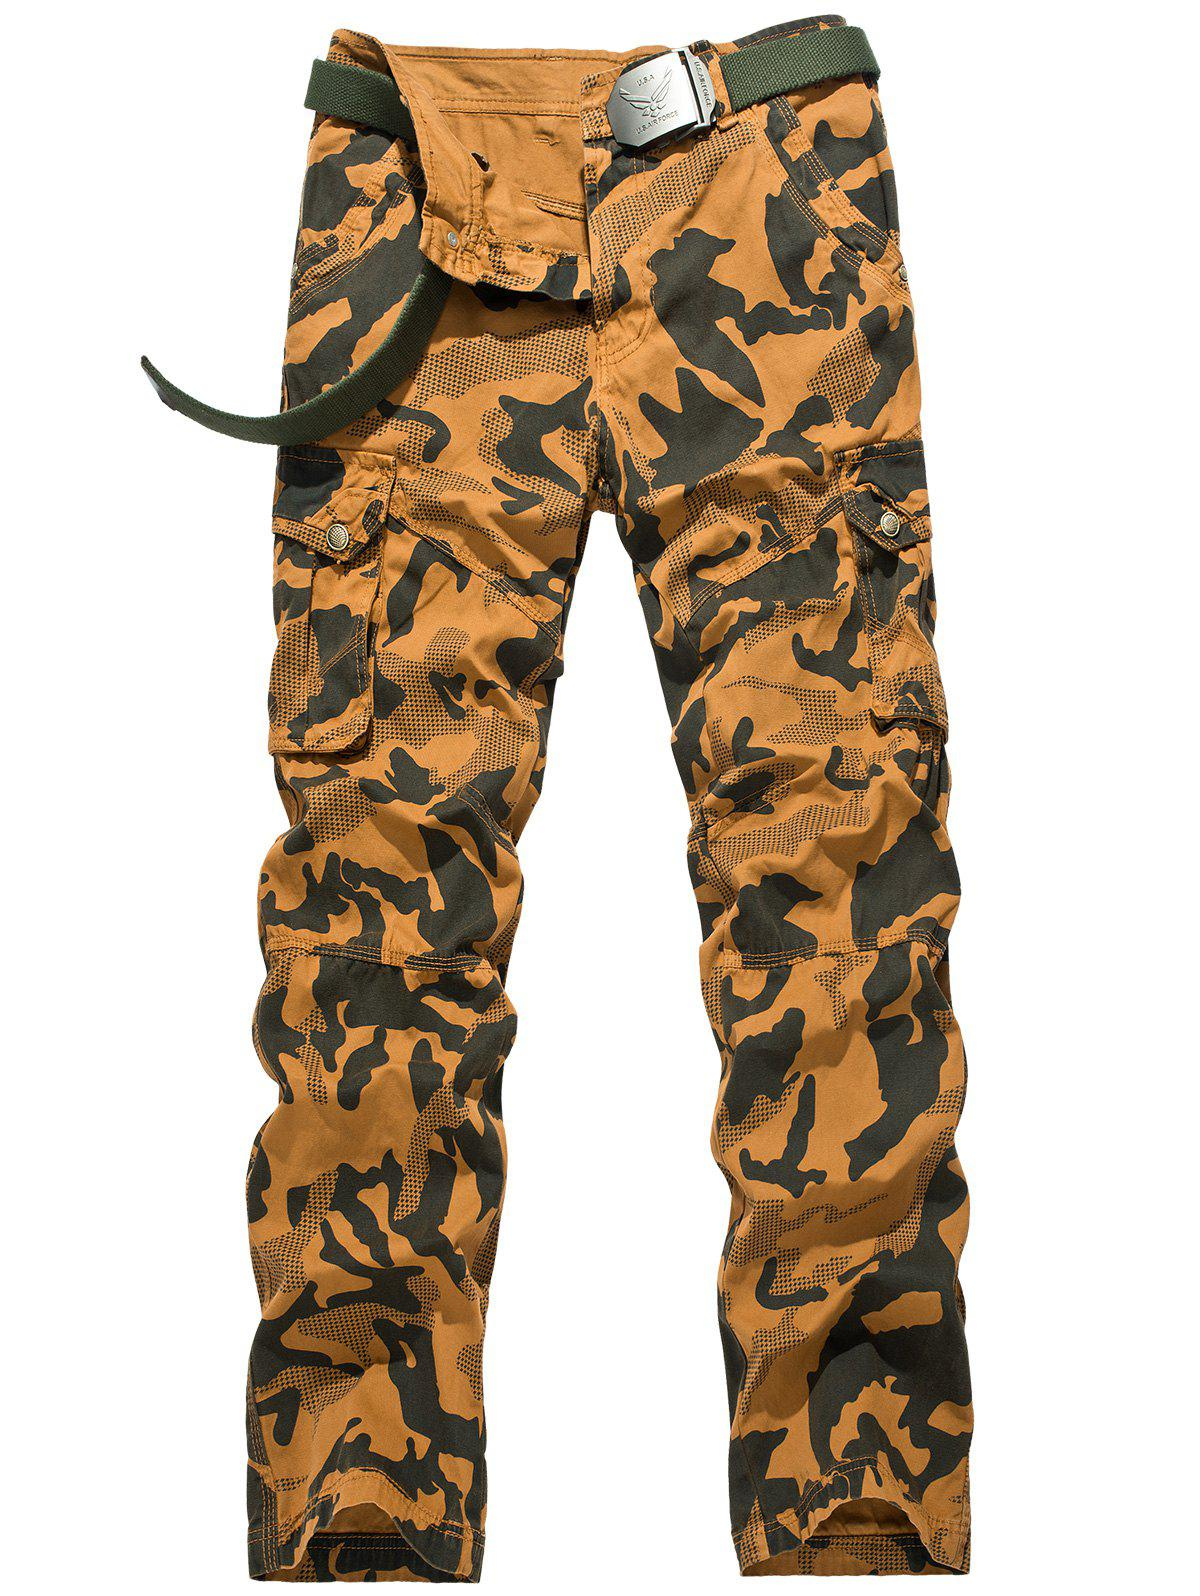 Swallow Gird Camouflage Cargo Pants - EARTHY 32